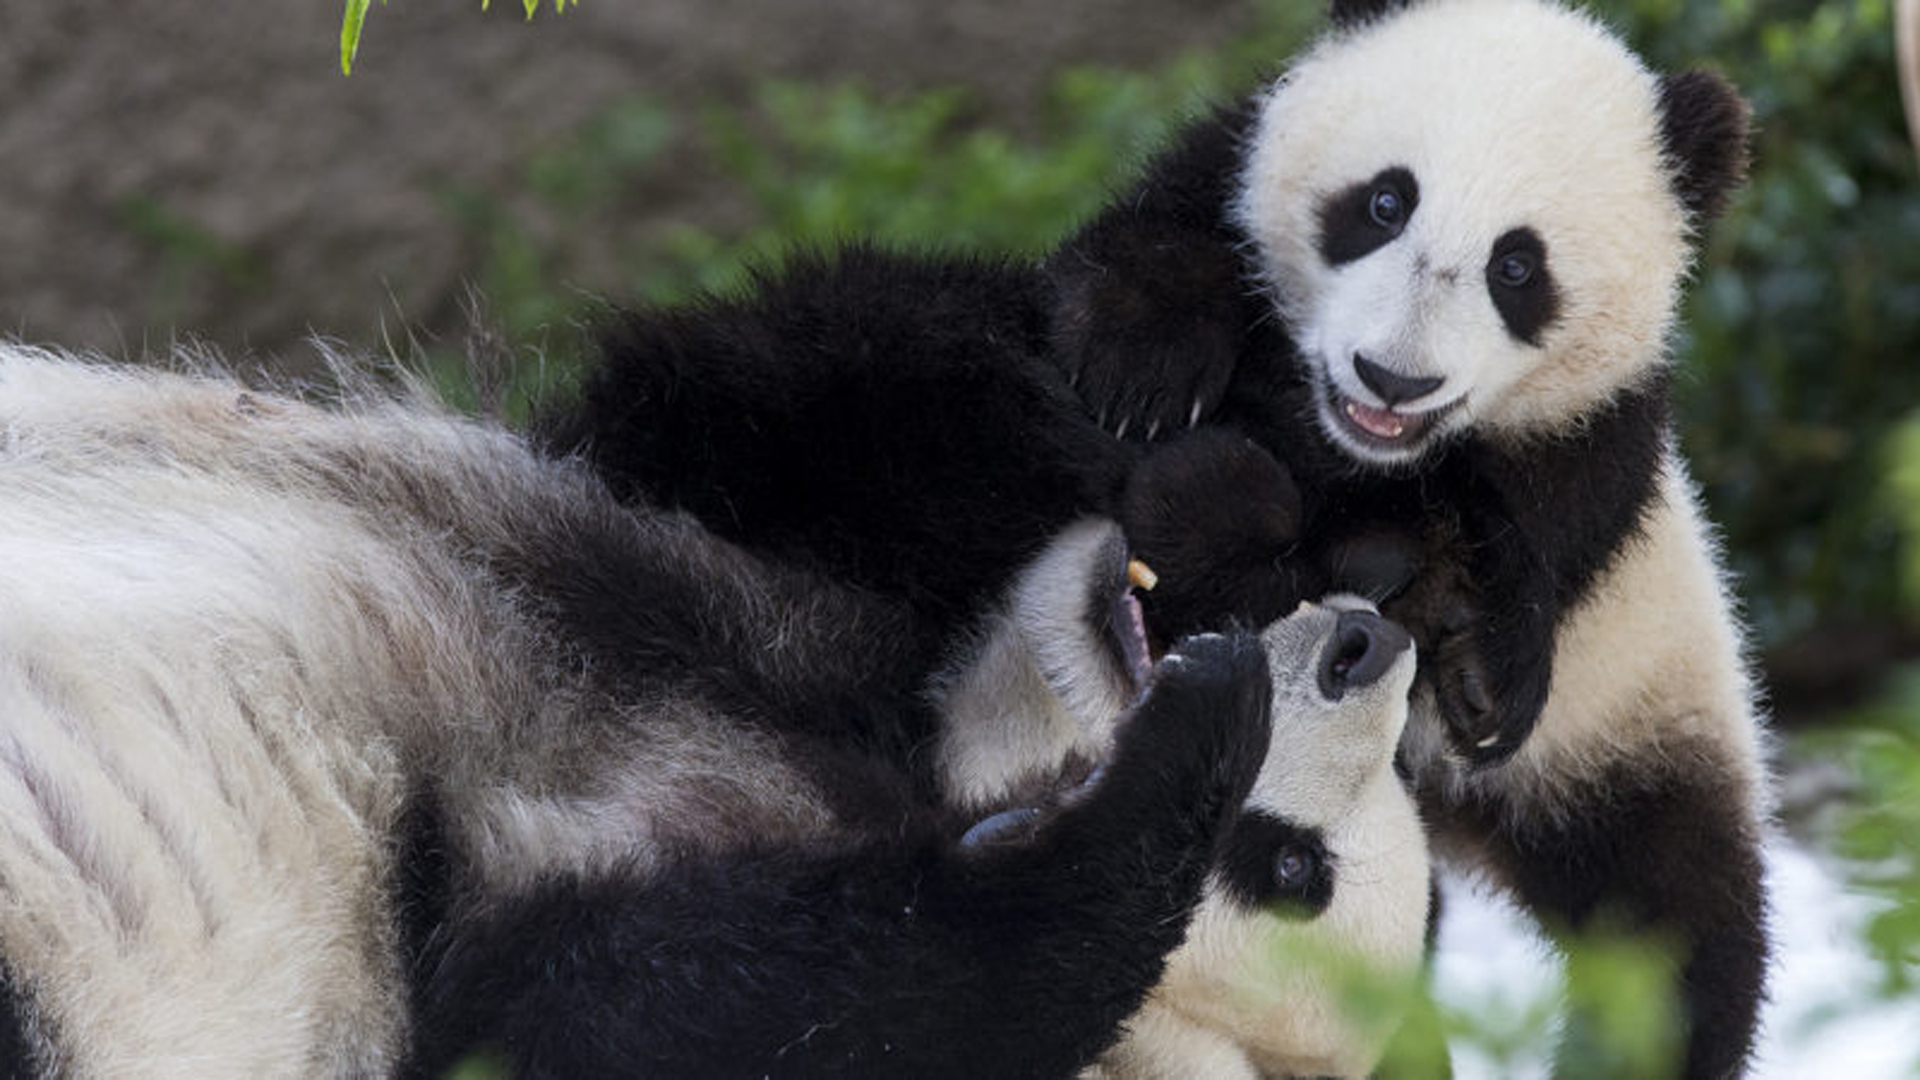 Giant panda Bai Yun, left, plays with her son Xiao Liwu in this undated photo provided by San Diego Zoo Global.